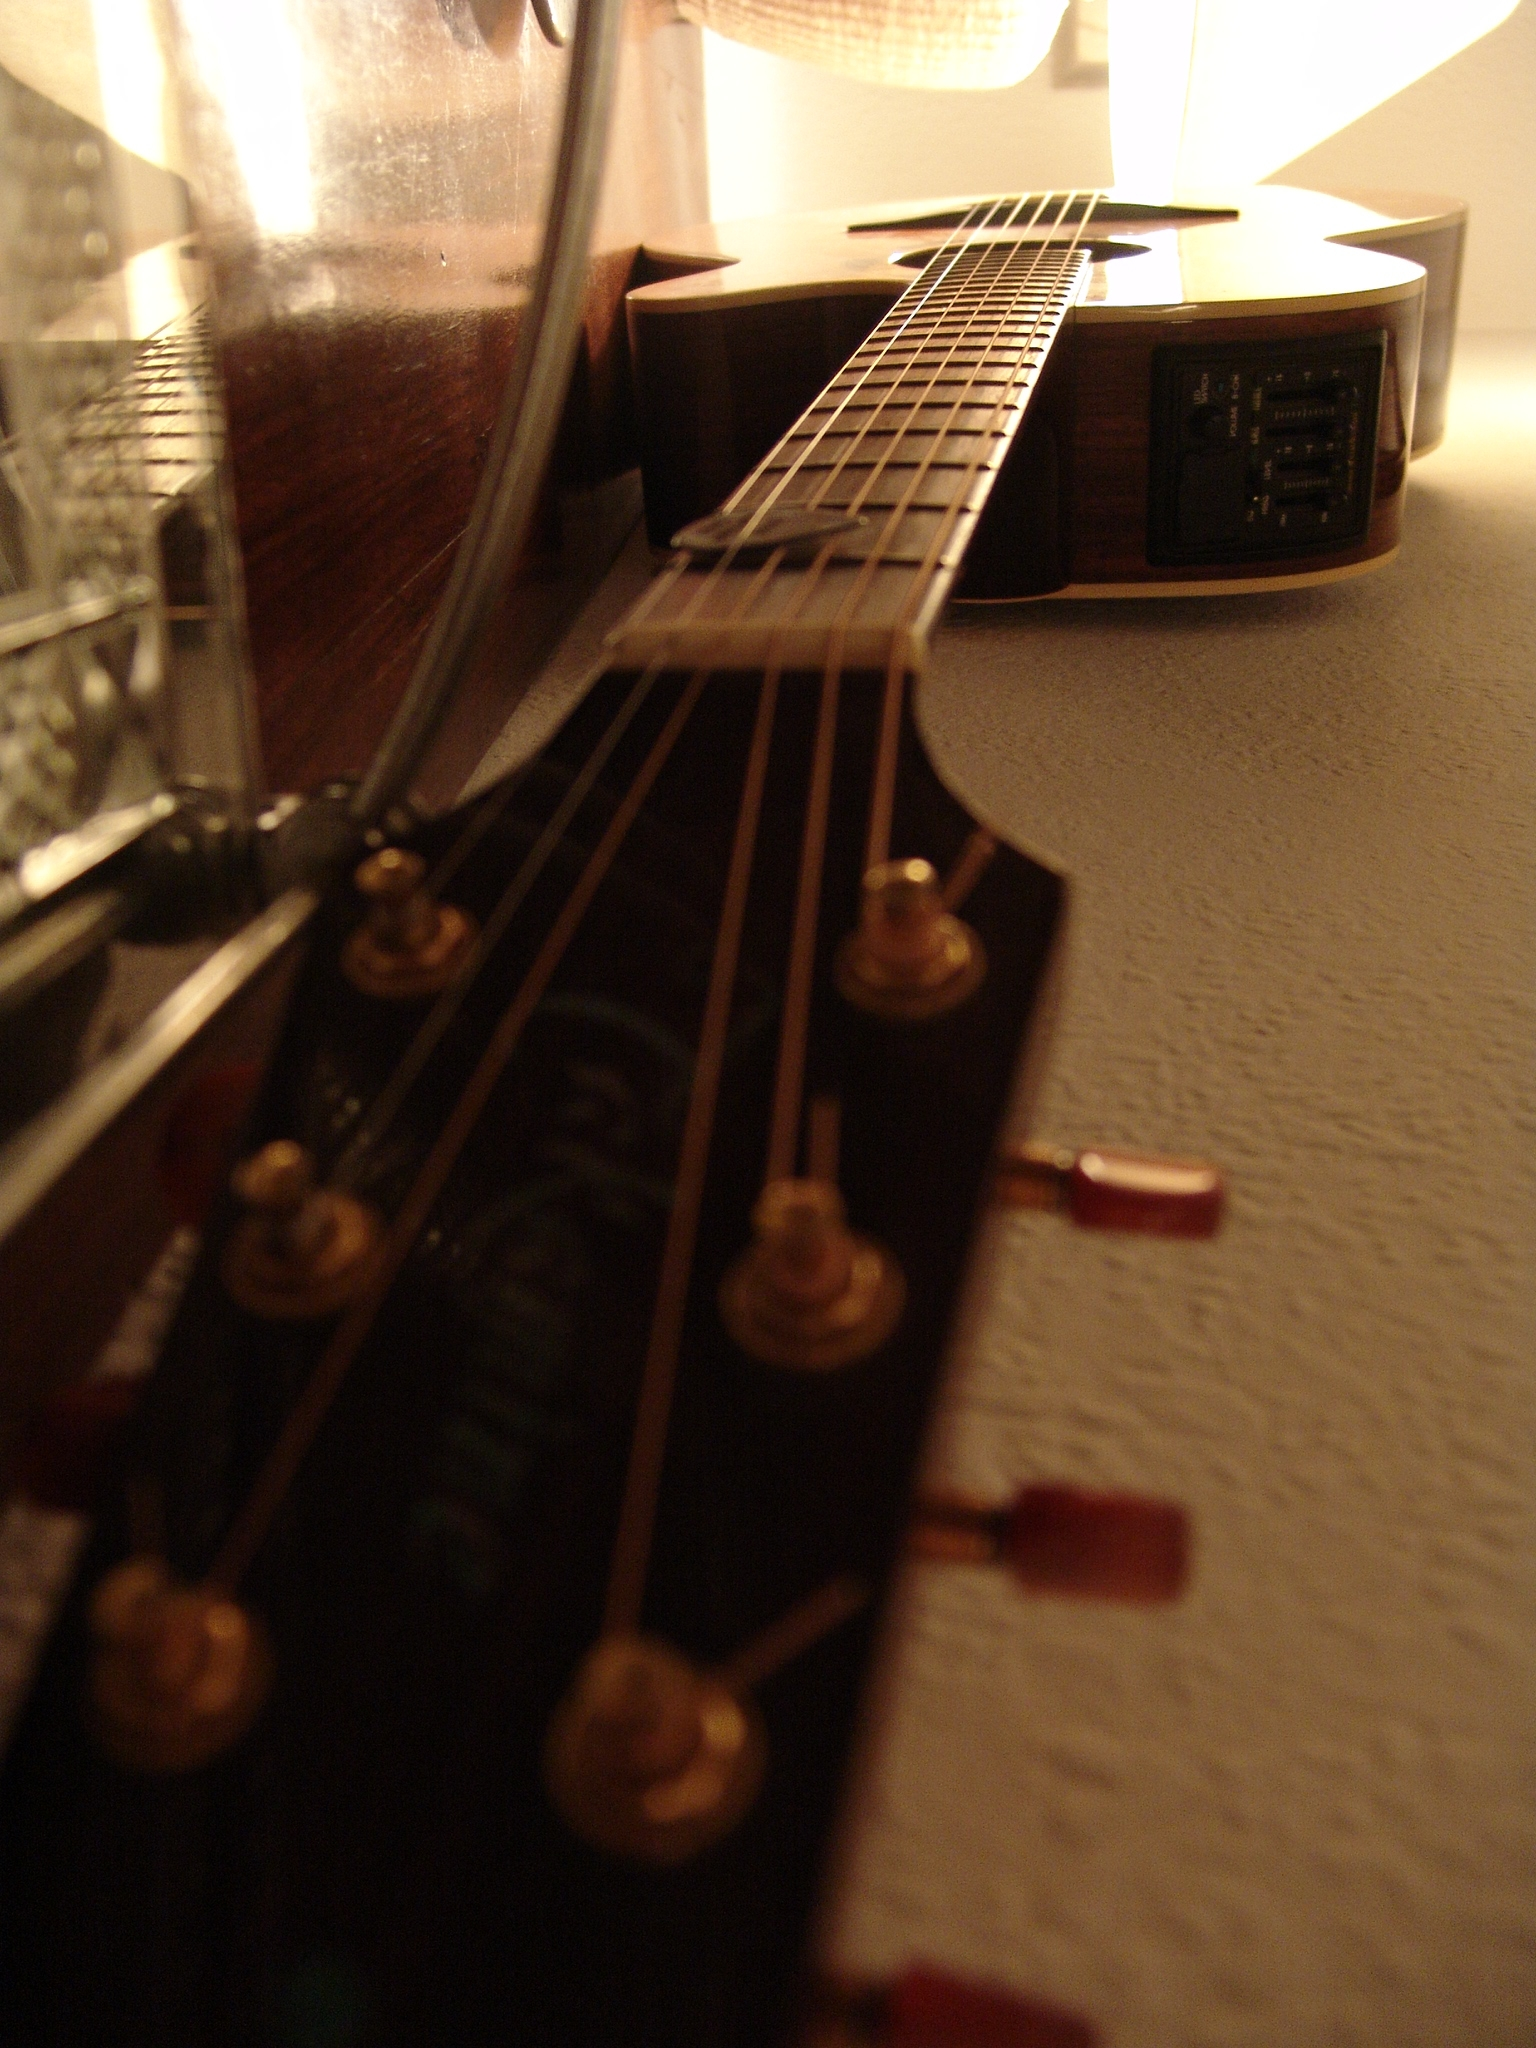 Noise has as much variety as the sounds made by this electro-acoustic guitar